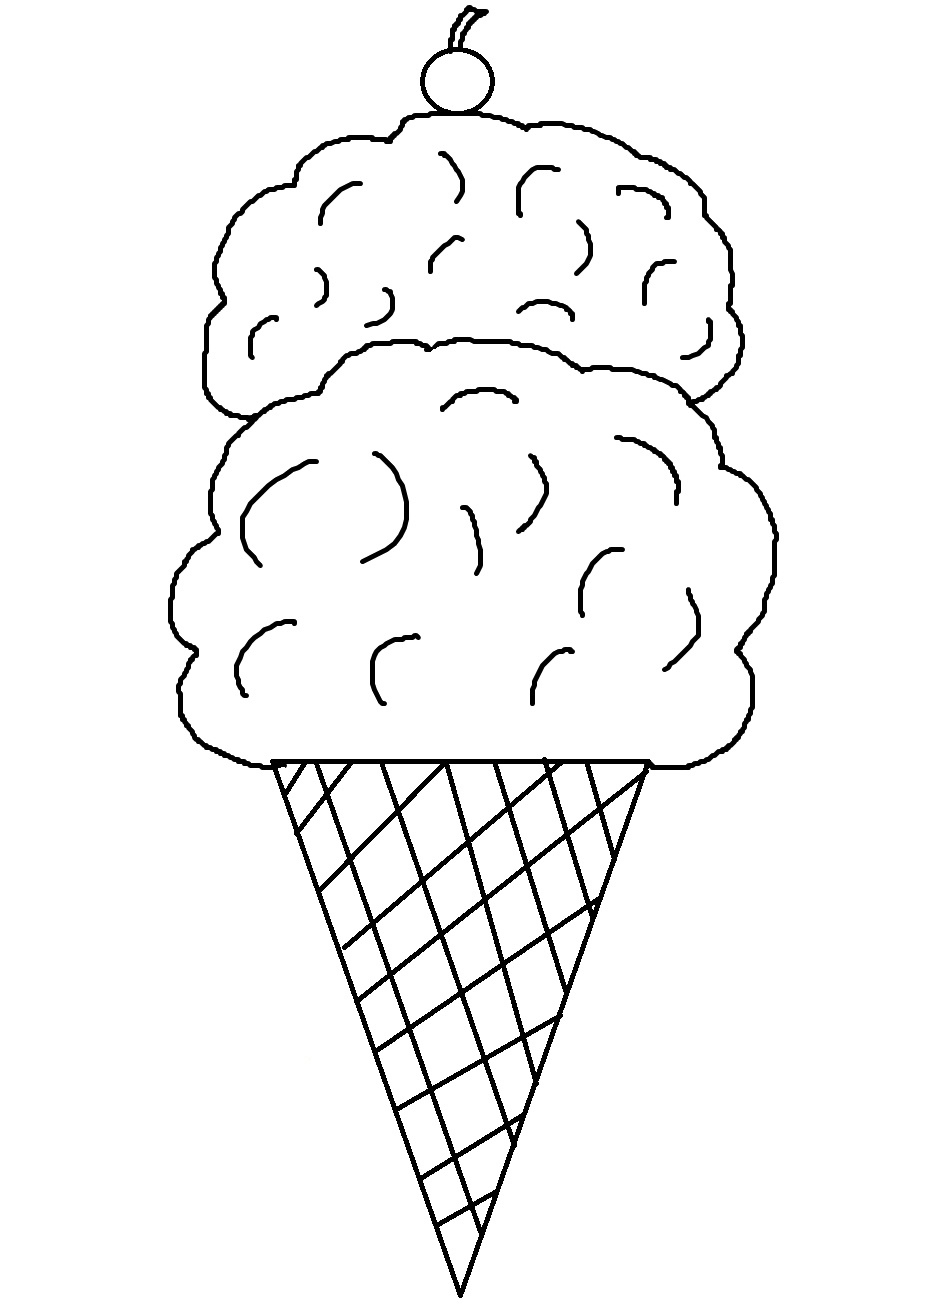 ice cream coloring template free printable ice cream coloring pages for kids coloring cream ice template